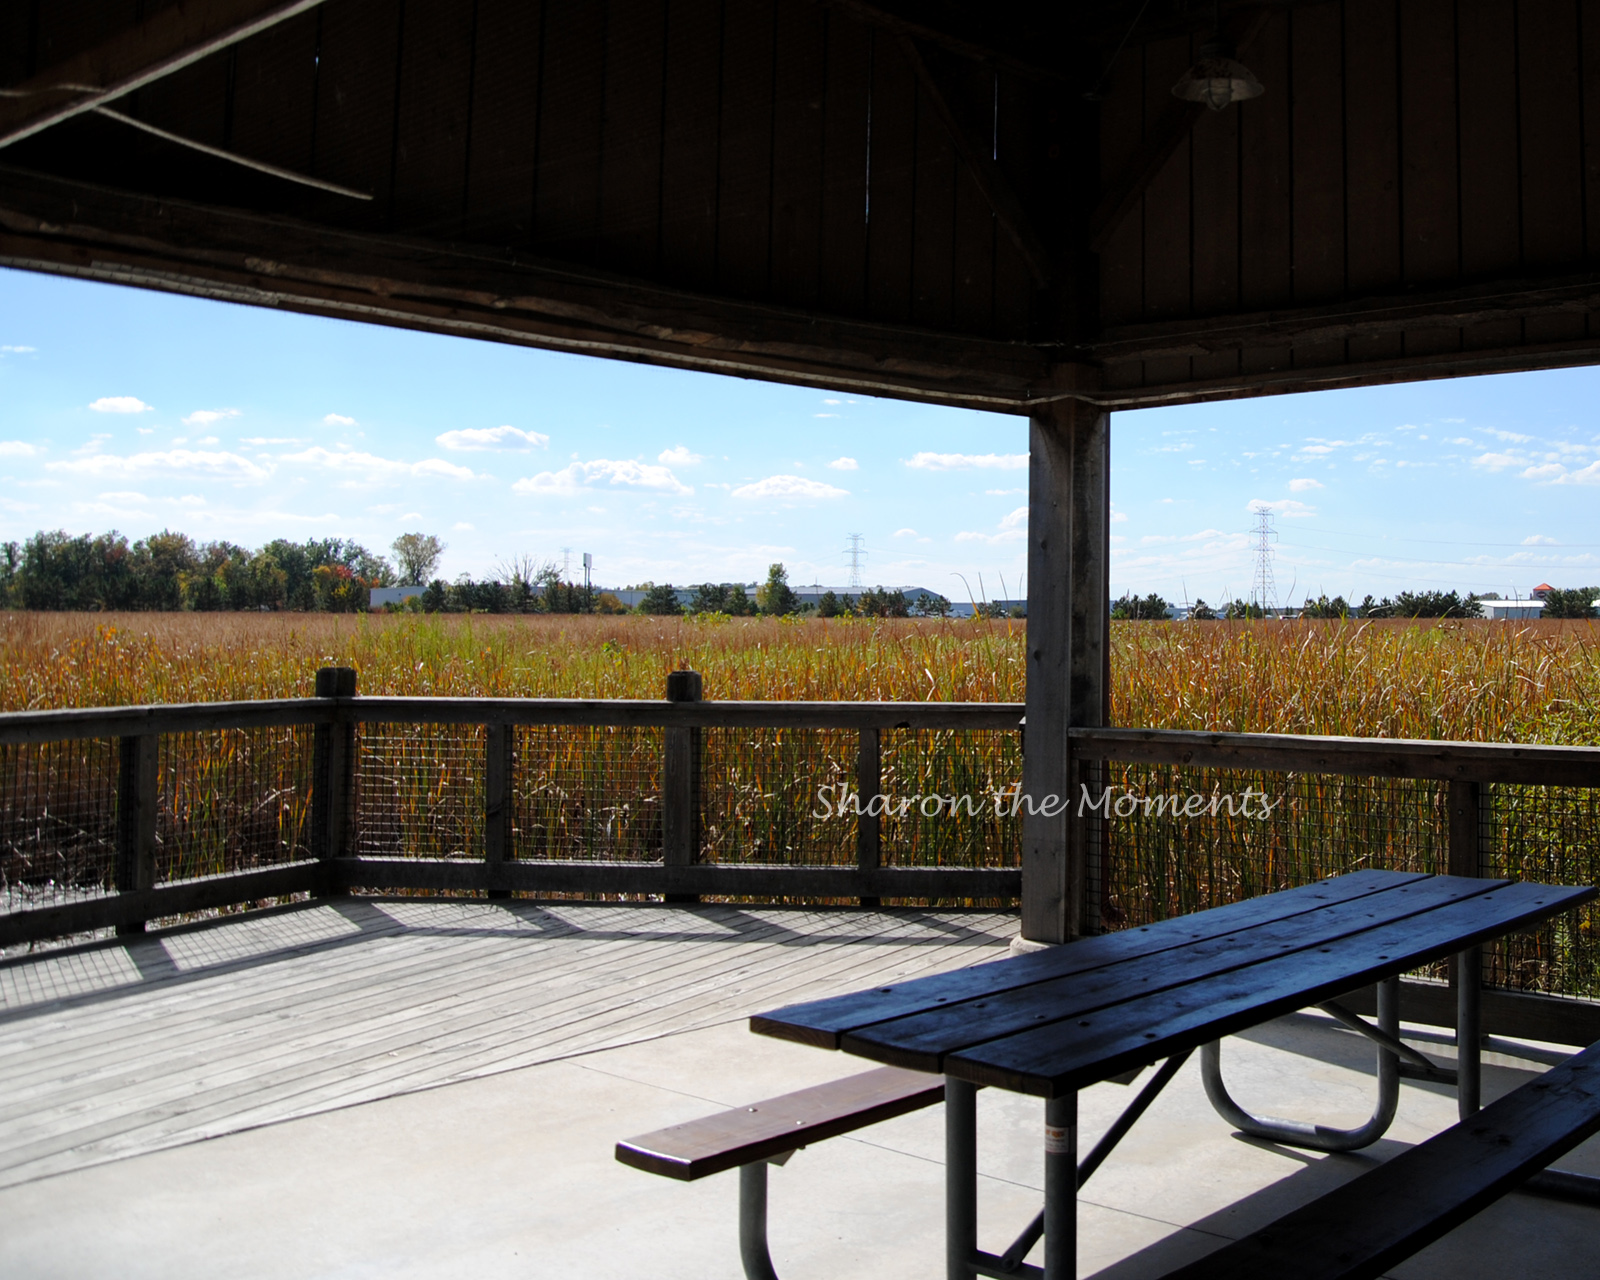 Loving Sunday at Glacier Ridge Metro Park|Sharon the Moments Blog